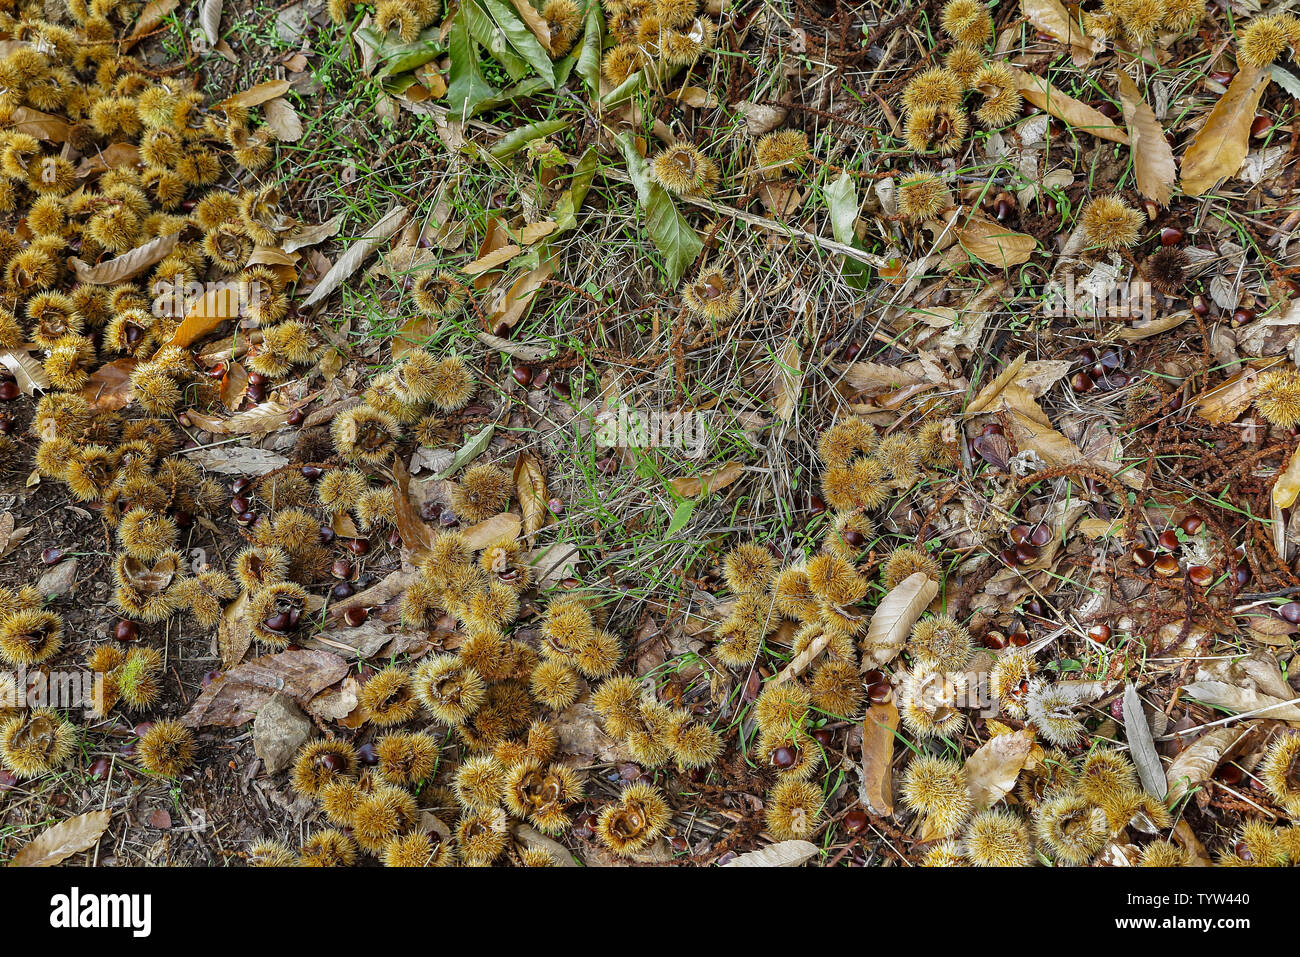 horizontal view of several hedgehogs and chestnuts fallen on the forest floor - Stock Image